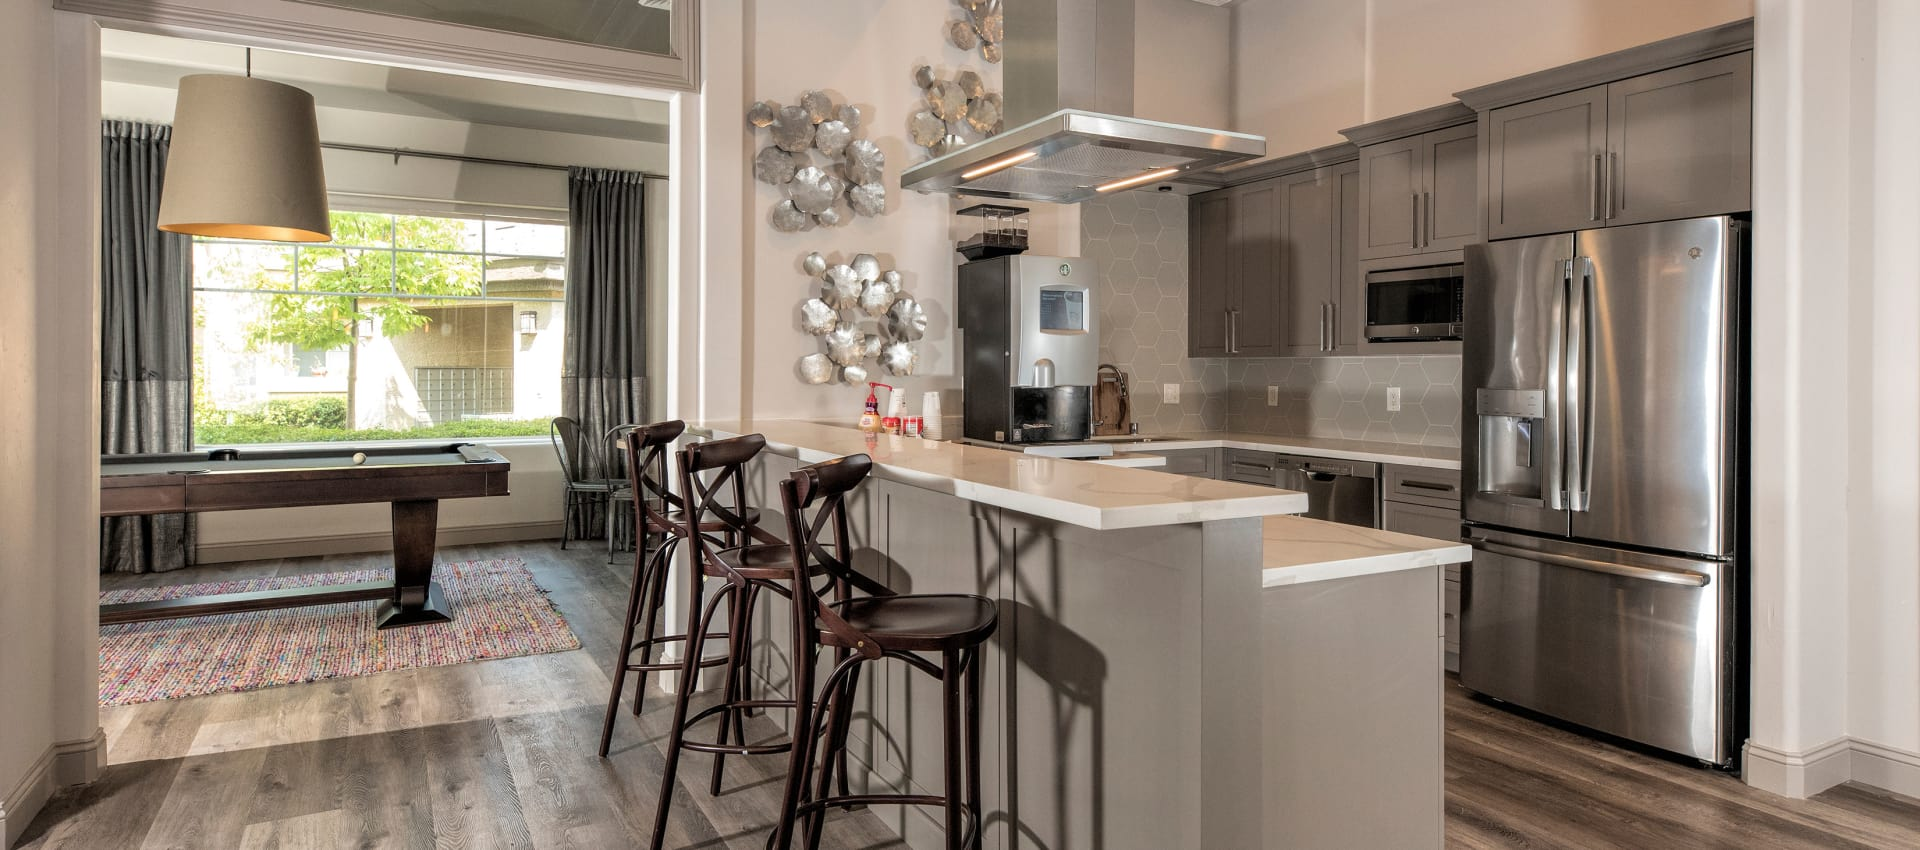 Enjoy apartments with a kitchen and rec room that is great for entertaining at The Artisan Apartment Homes in Sacramento, California